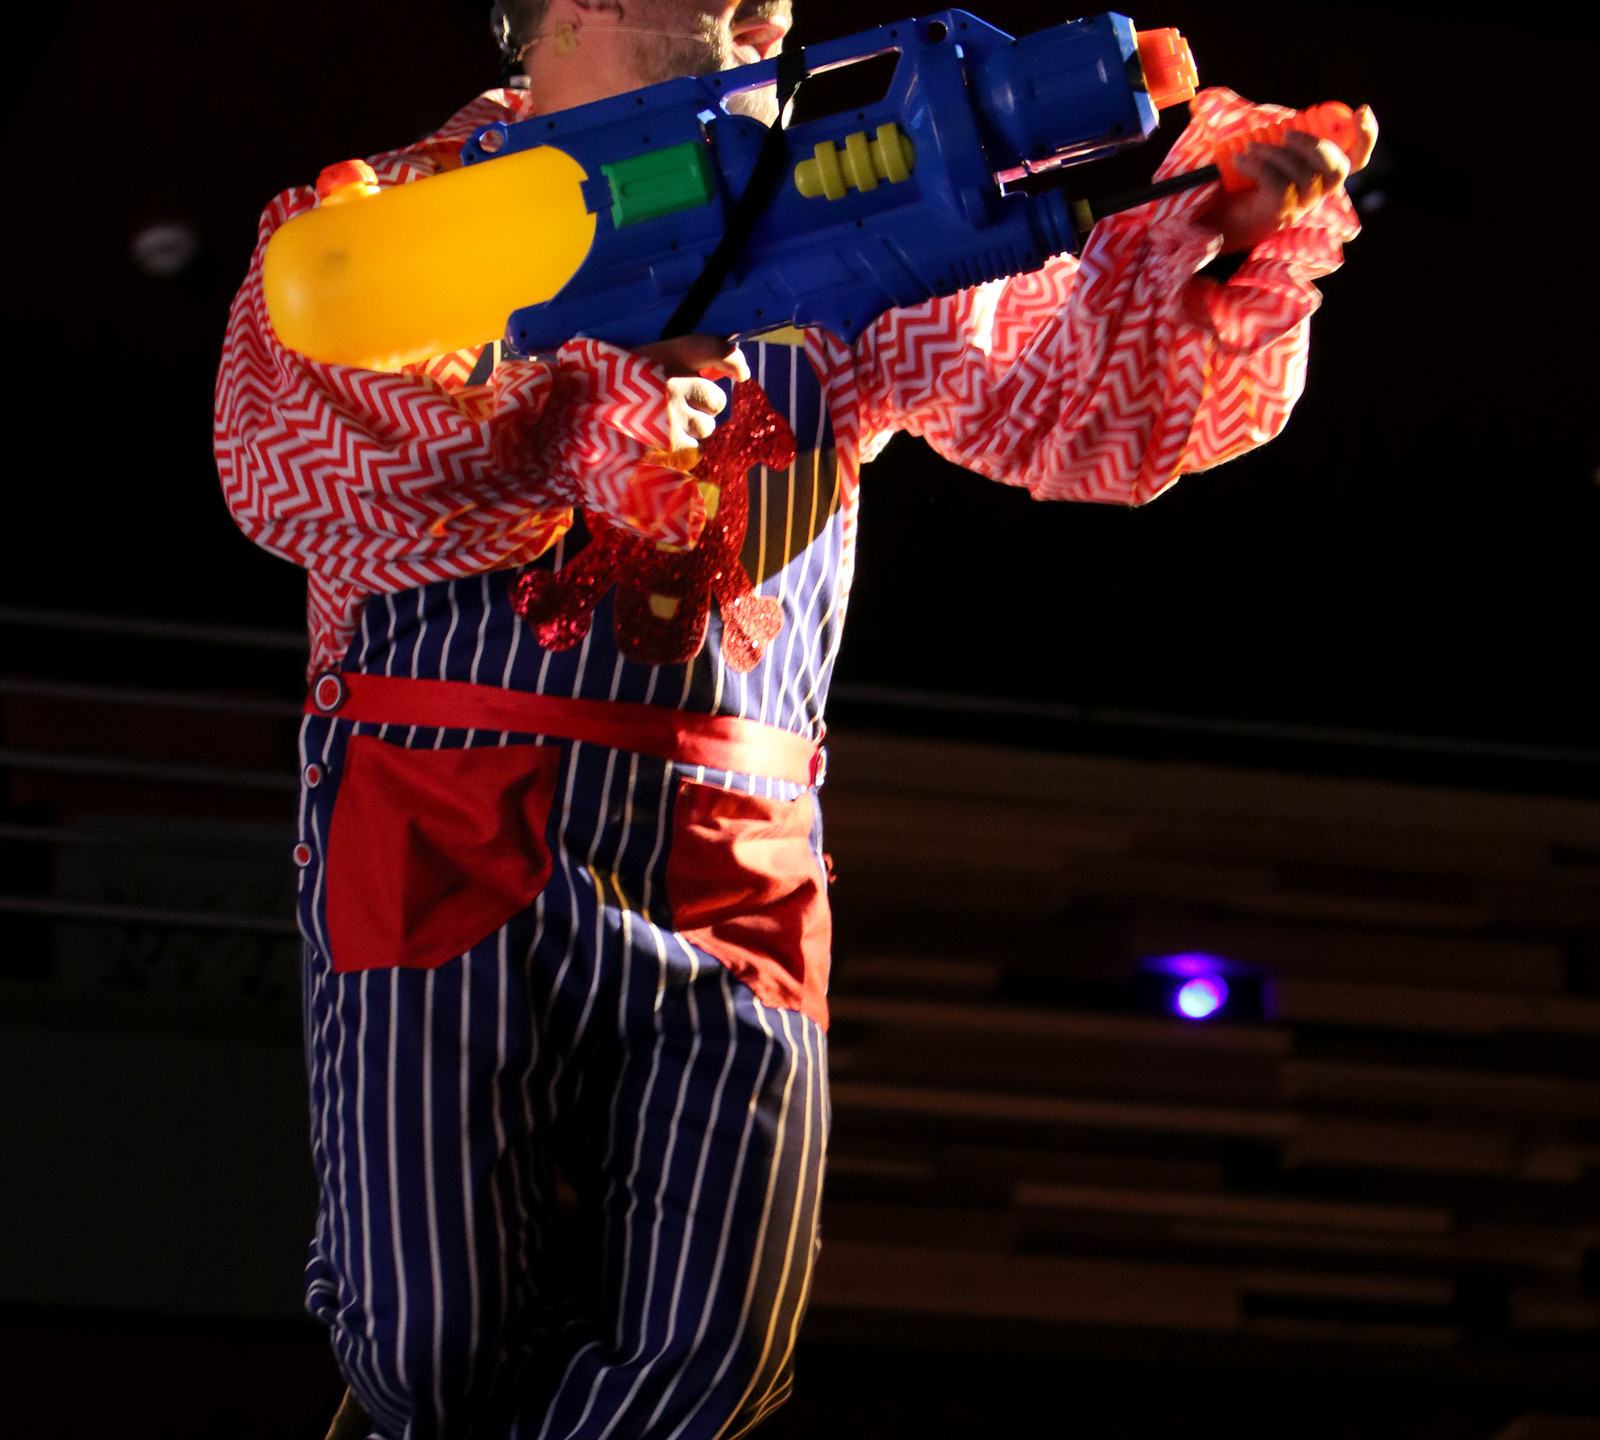 Andy Collins waterpistol